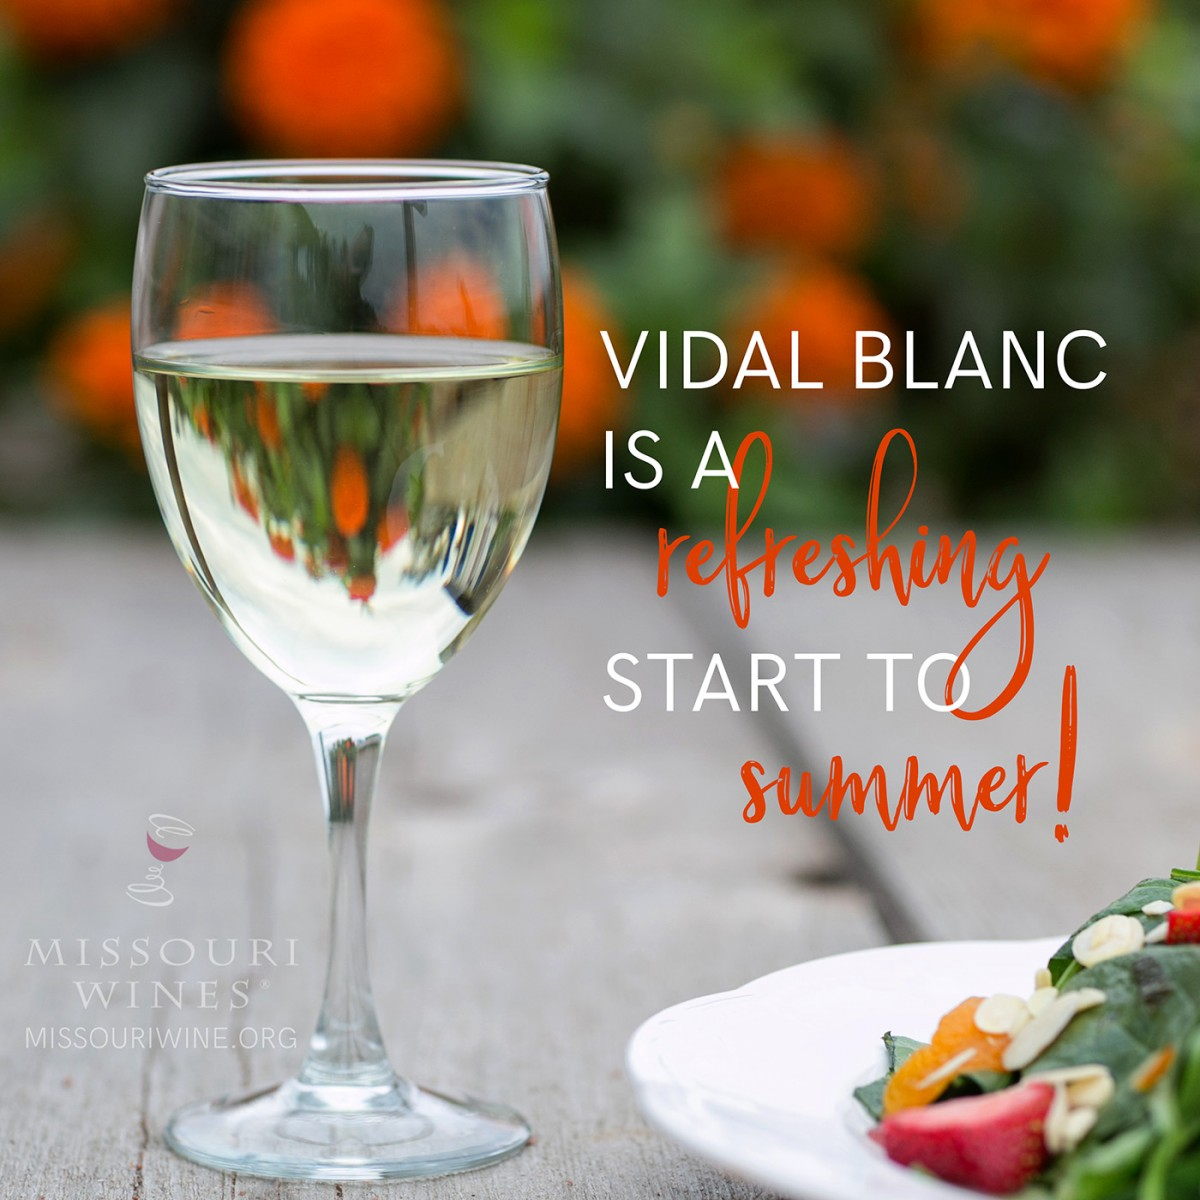 MO Vidal Blanc is a Refreshing Start to Summer